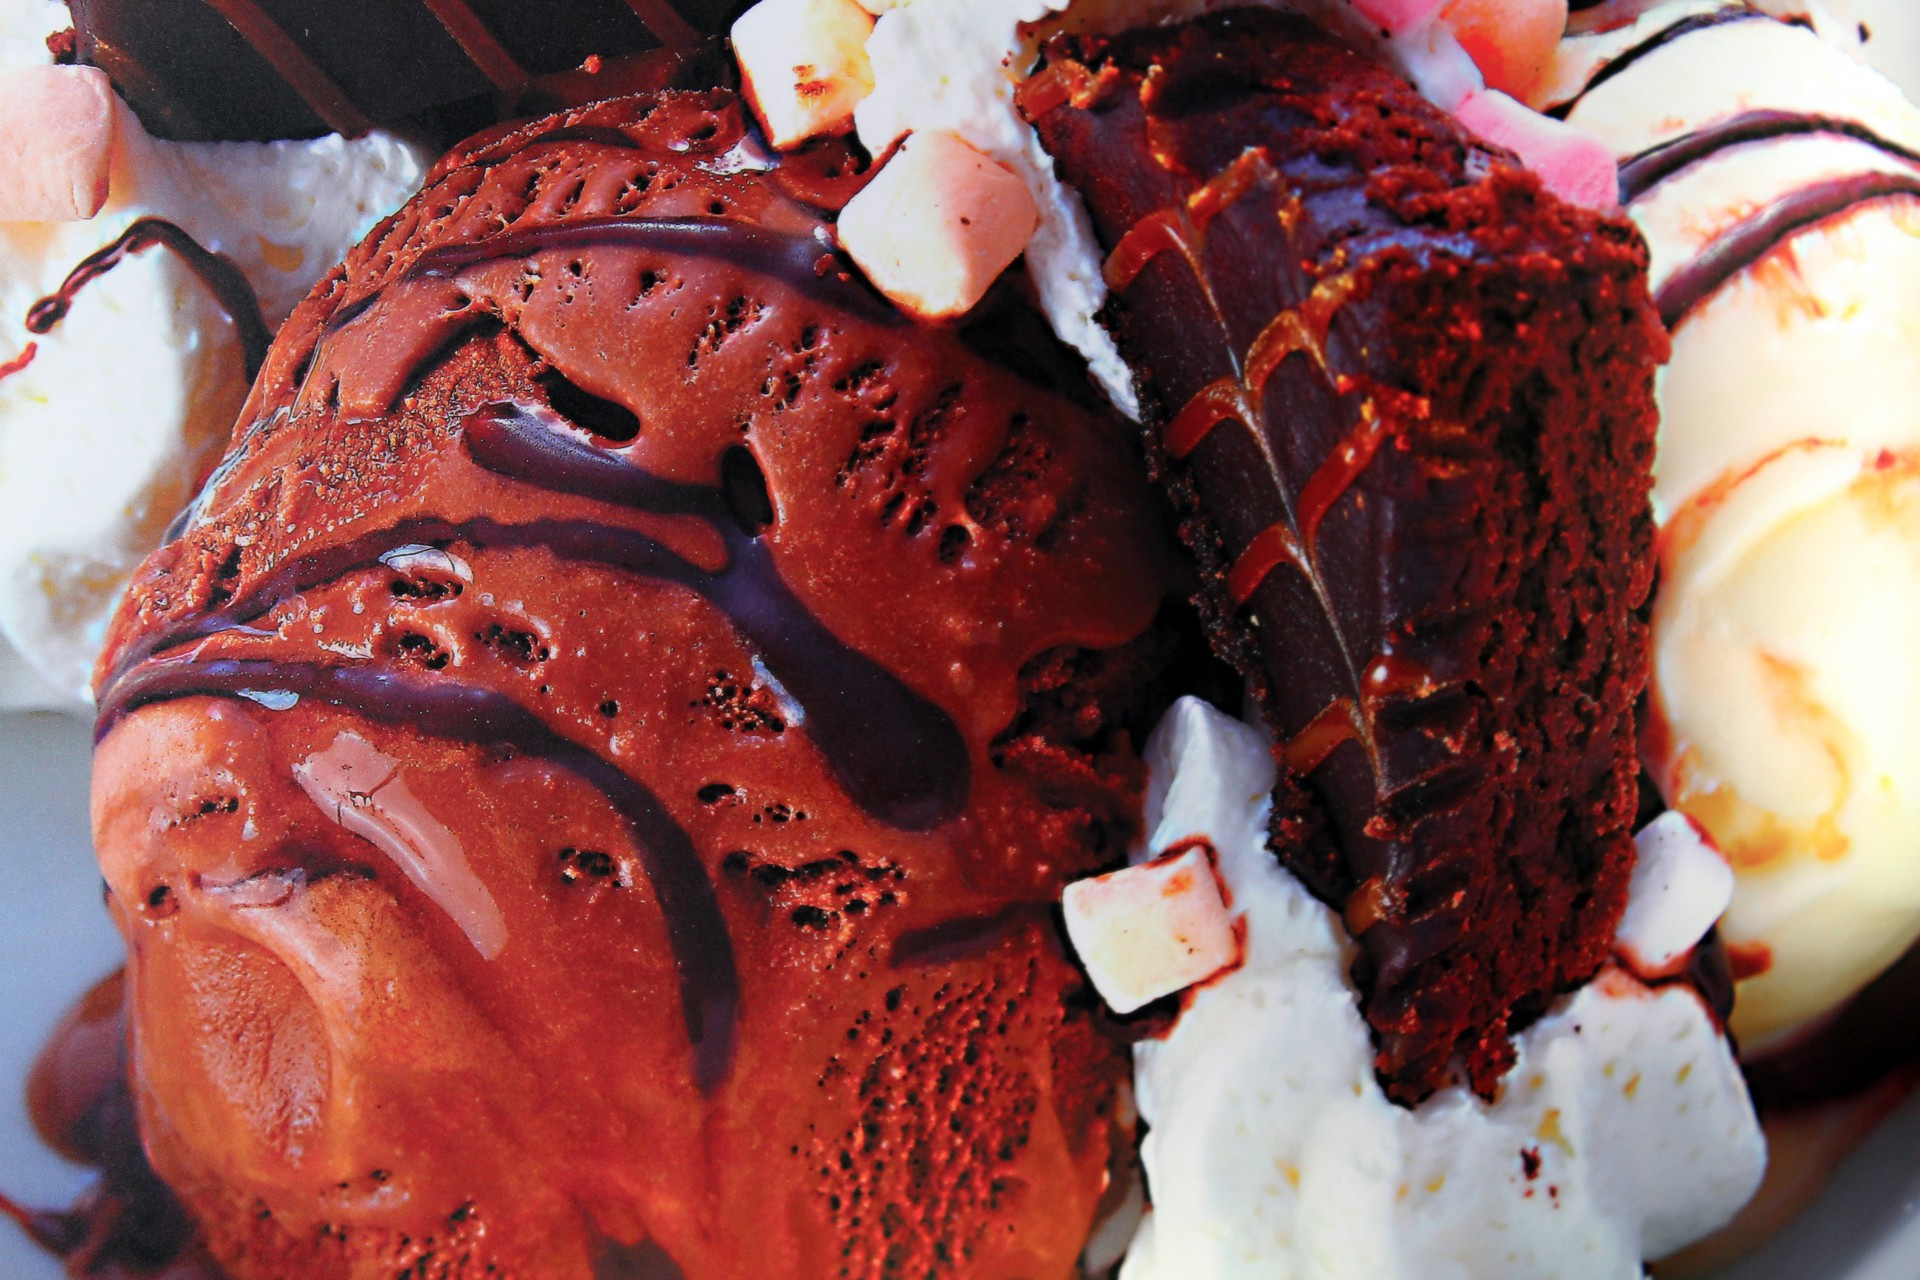 ROCKY ROAD ICE CREAM - Many fans and friends report that Doris' favorite flavor of ice cream was served t othem in a cantaloupe.